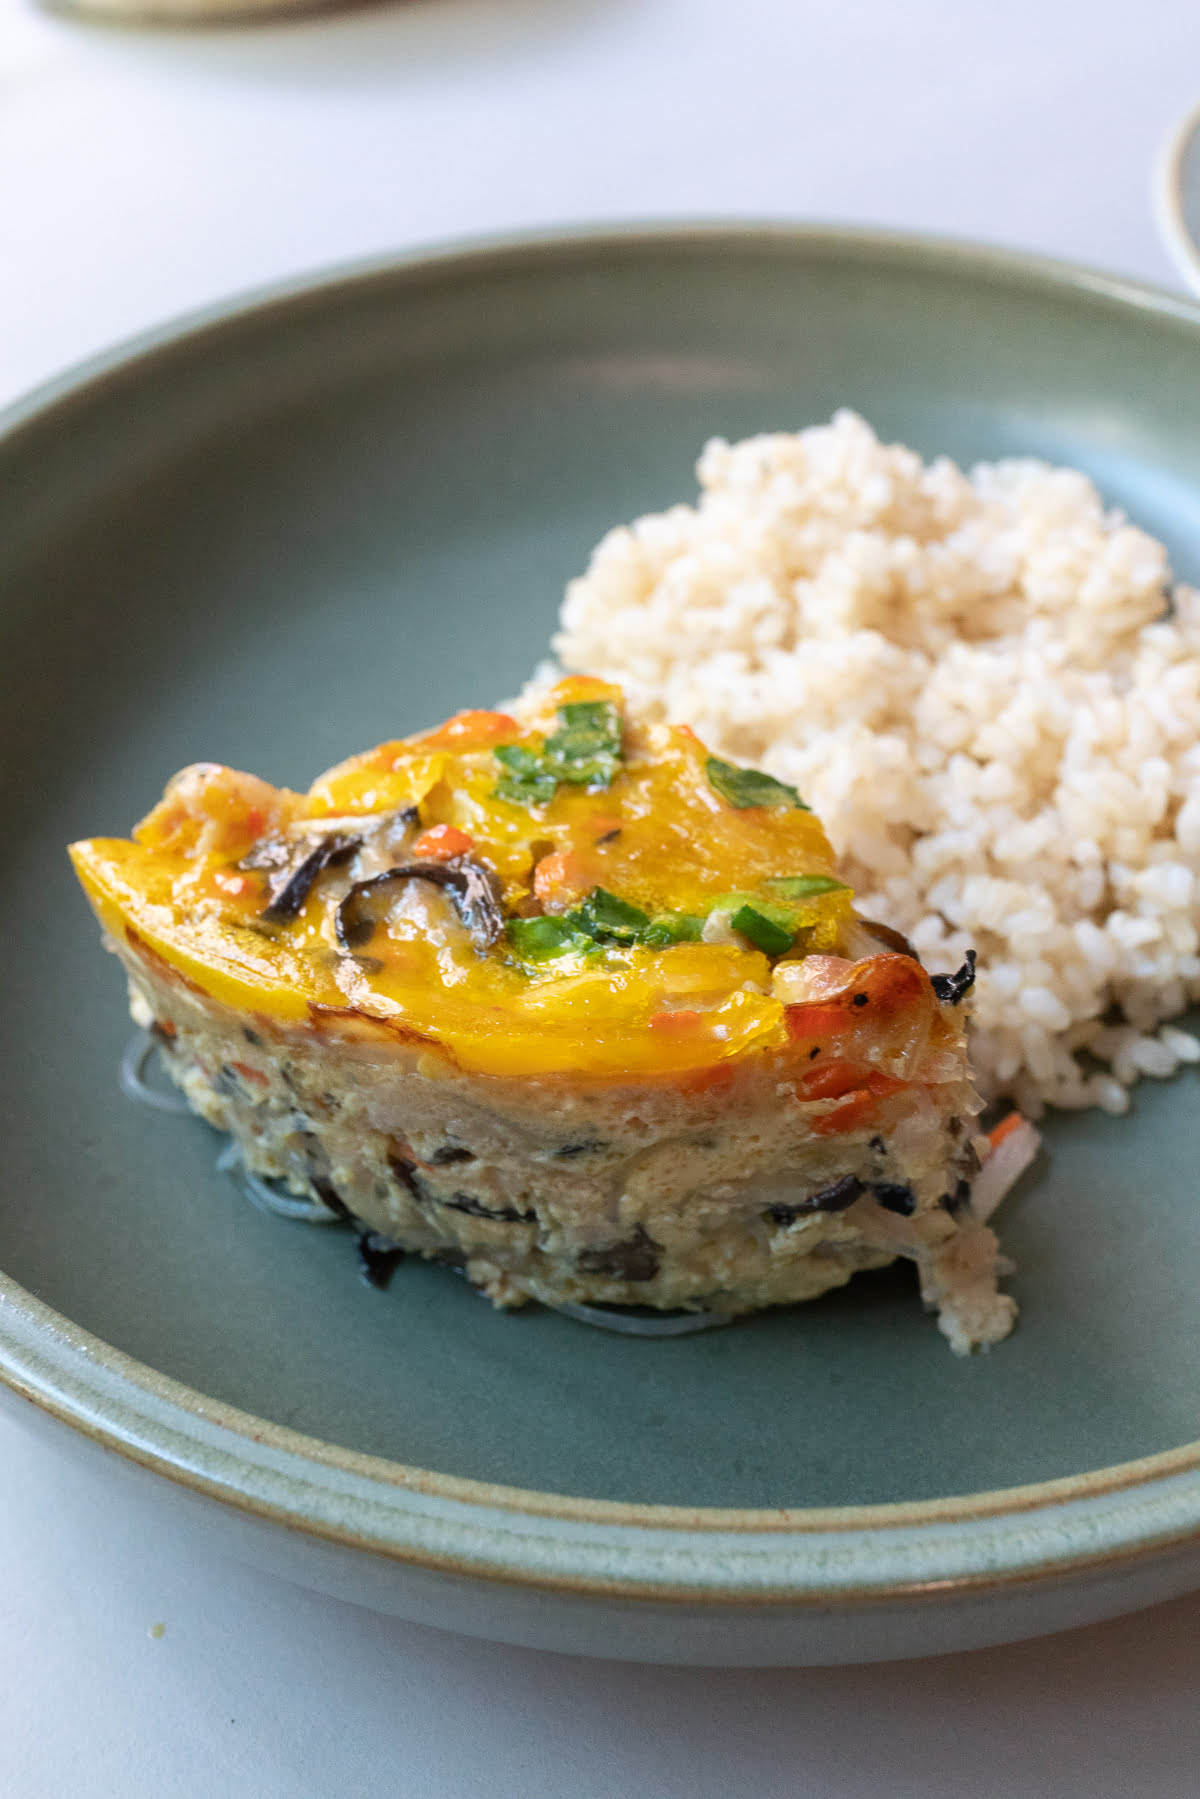 Wedge of baked Vietnamese Egg Meatloaf (Cha Trung) served with rice.